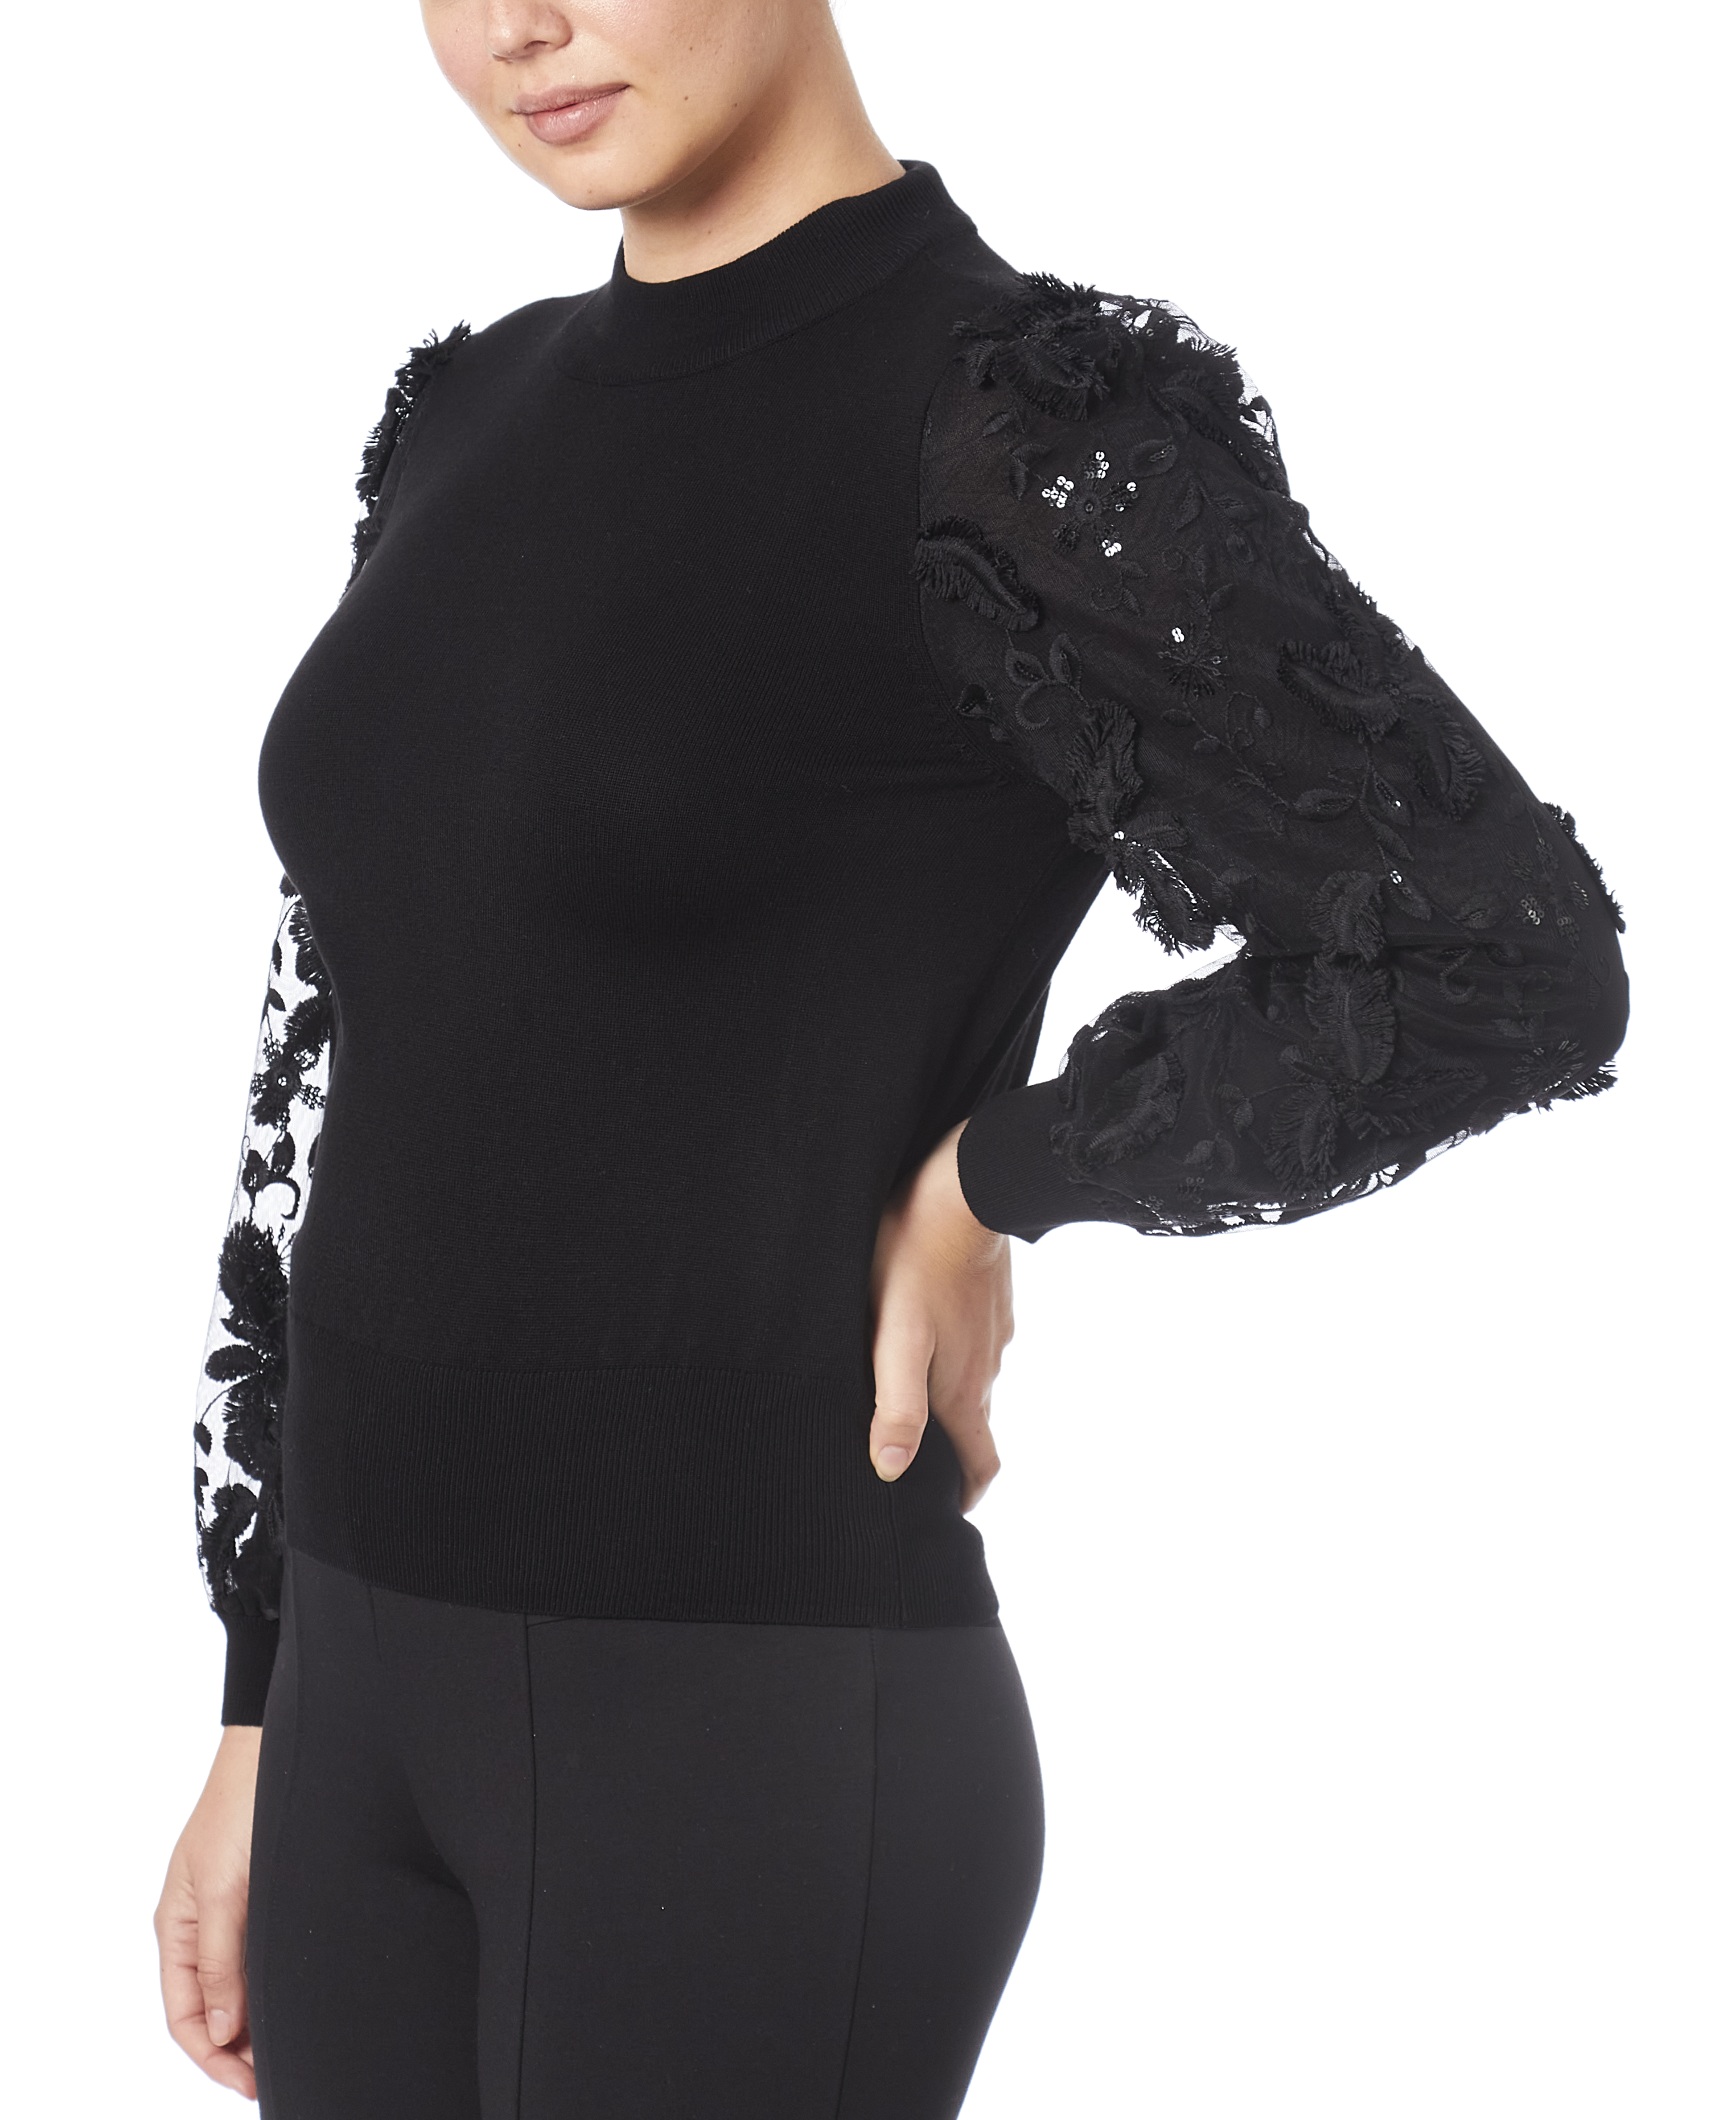 Mixed-Media 3D Sweater in Black